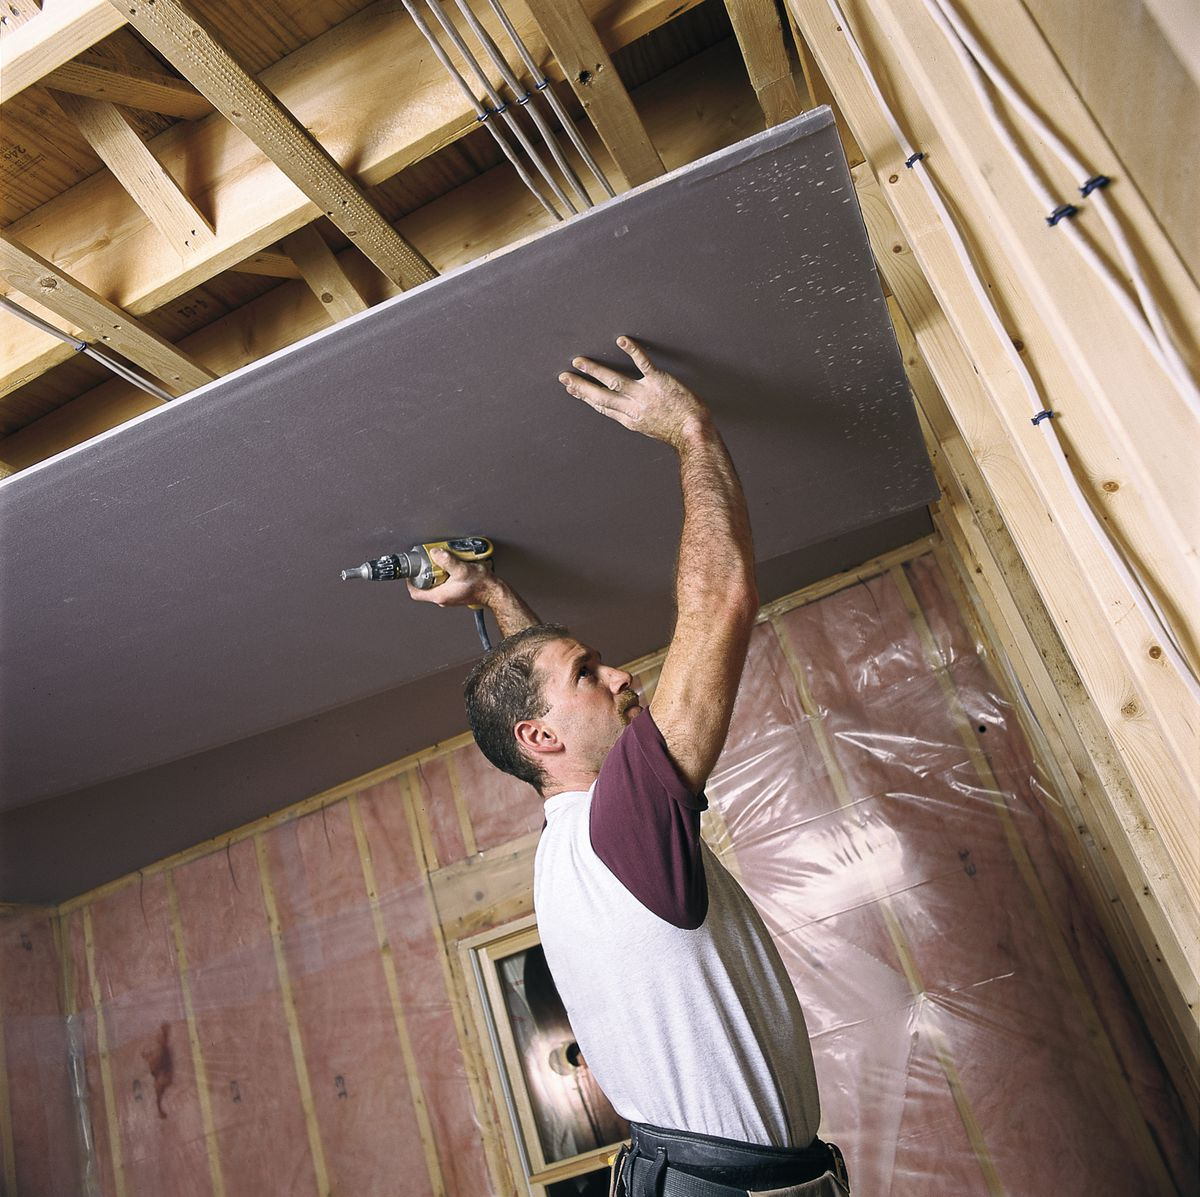 Man Covers Ceiling For Drywall